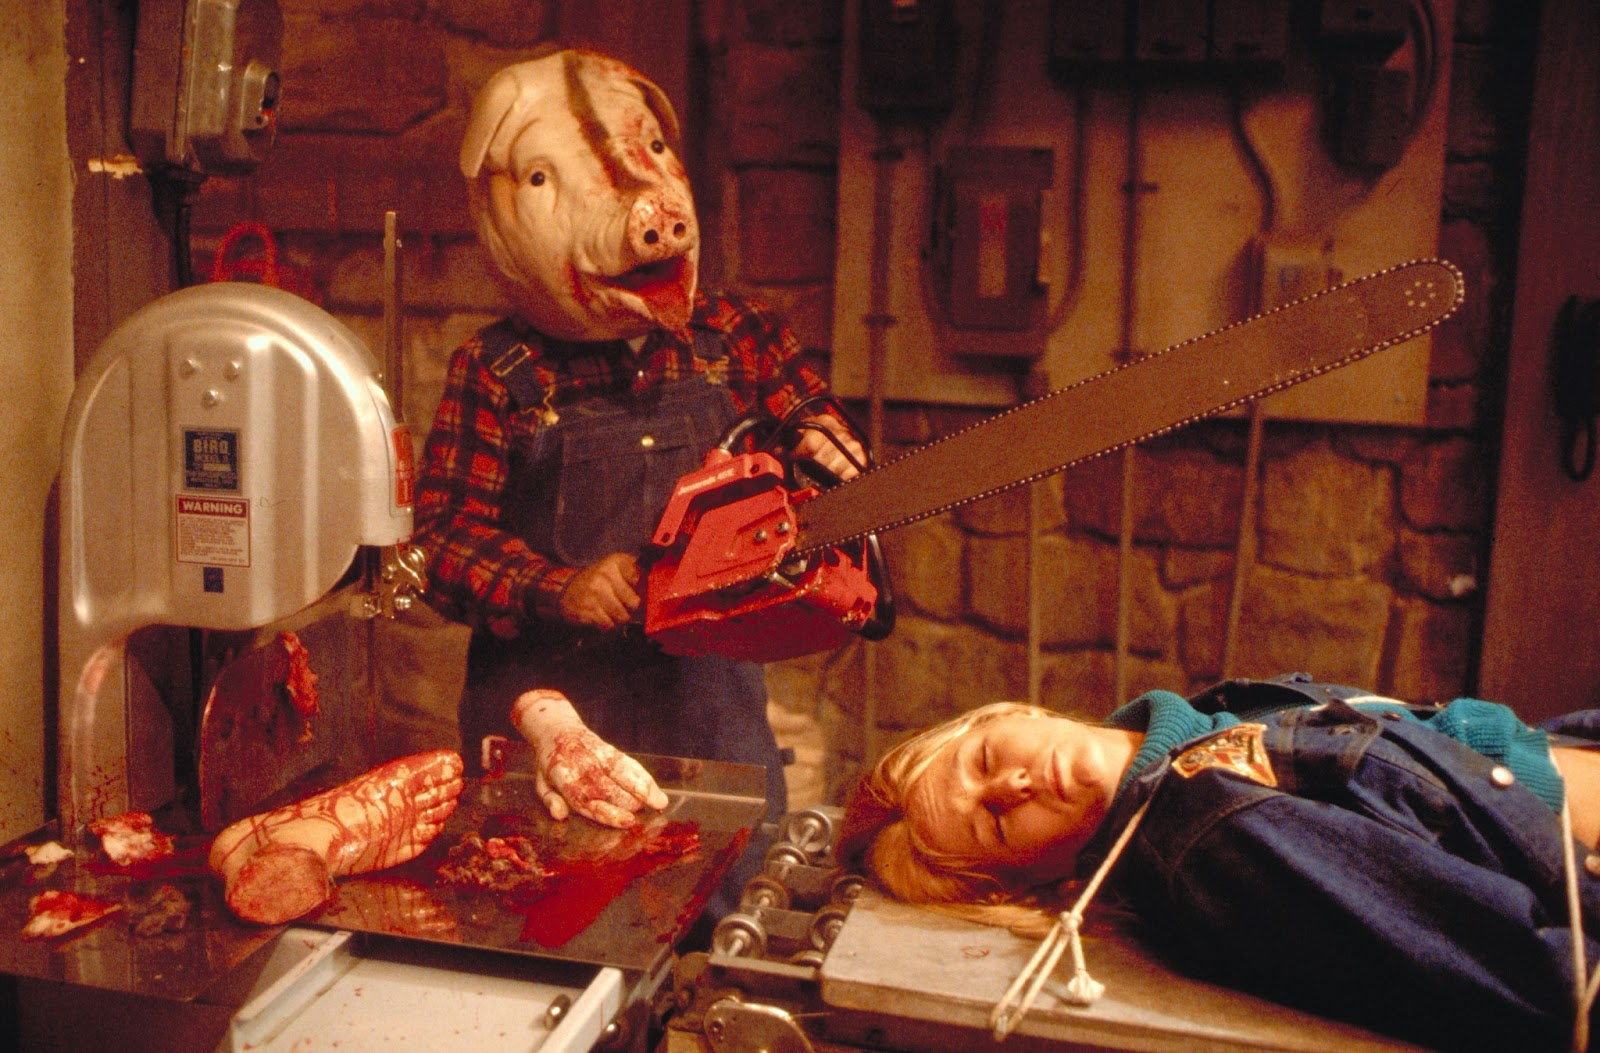 Rory Calhoun (in pig mask) with an imprisoned Nina Axelrod in Motel Hell (1980)